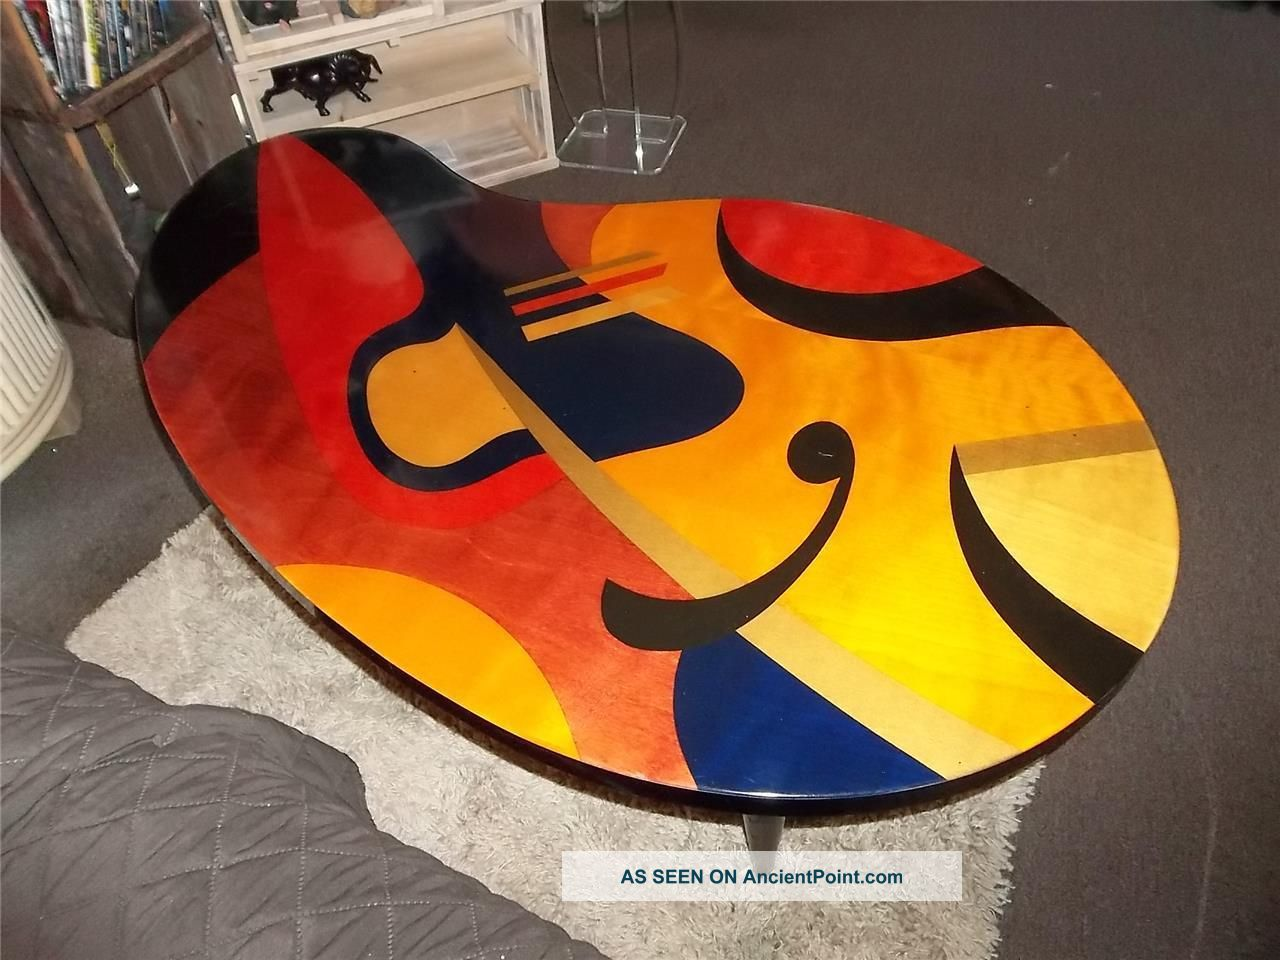 Vtg Mcm Benjamin Le Art Nouveau Kidney Shape Stained Inlaid Wood Coffee Table Post-1950 photo